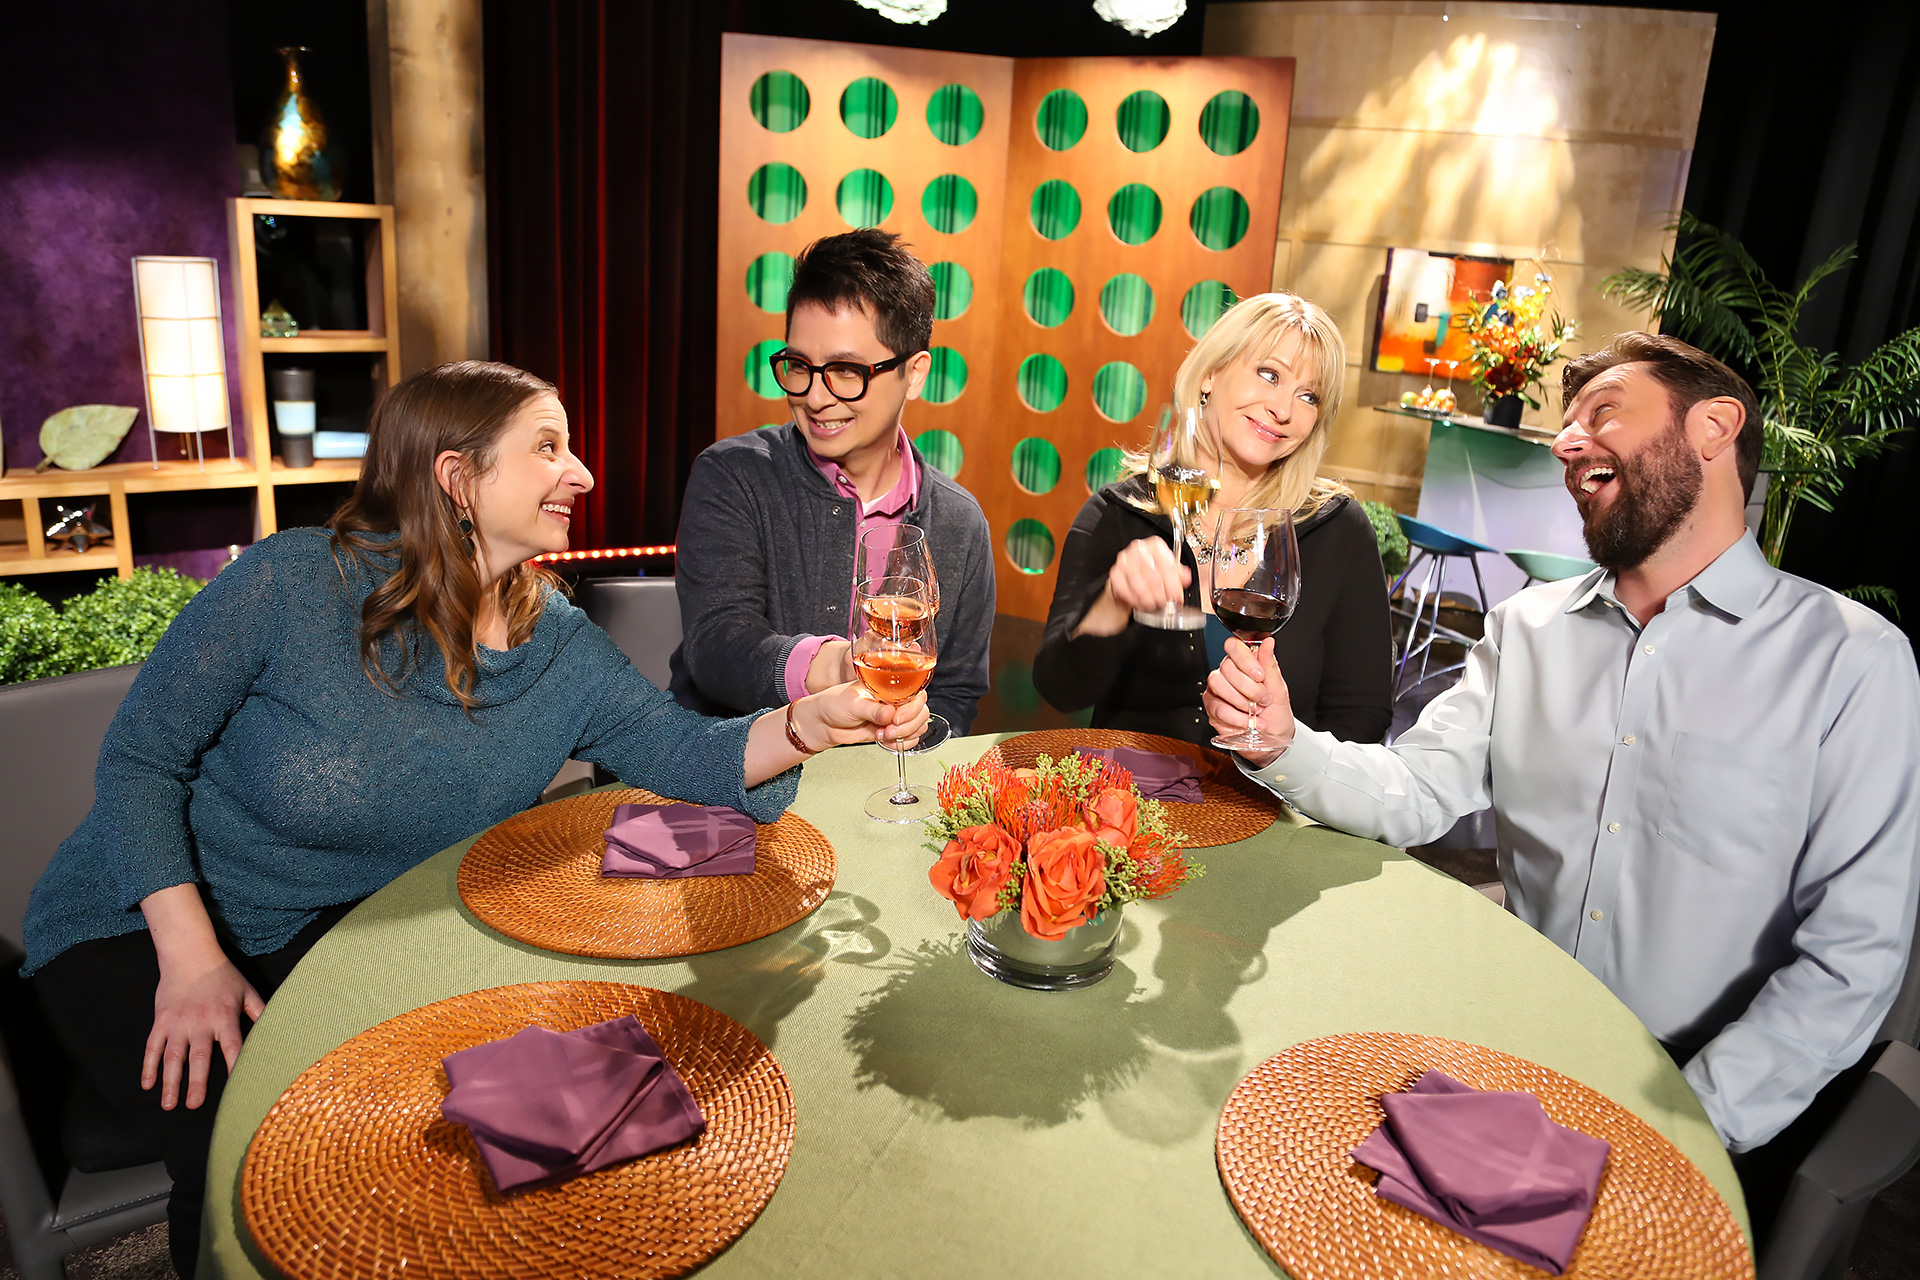 Host Leslie Sbrocco and guests on the set of season 13 episode 9.